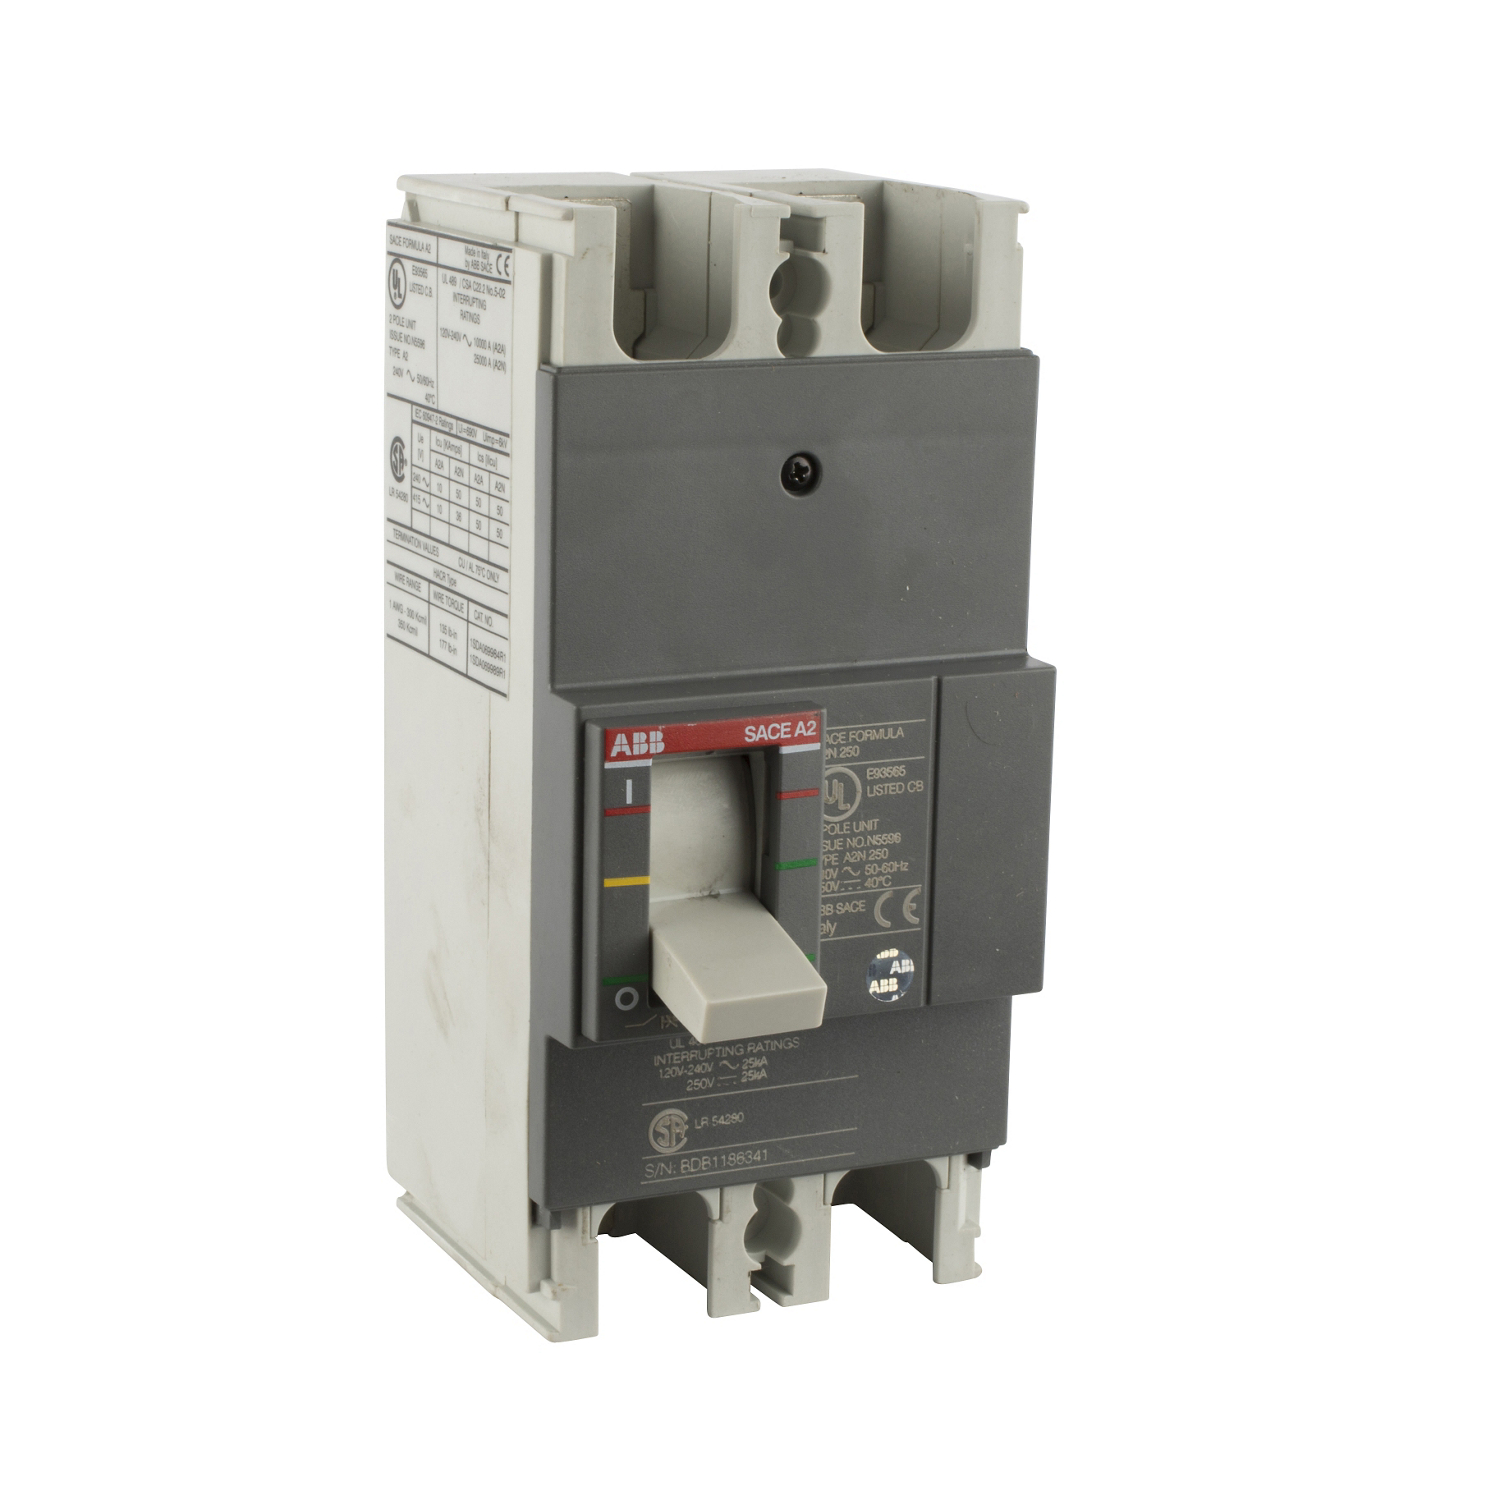 ABB A2N225TW-2 Molded Case Circuit Breakrs